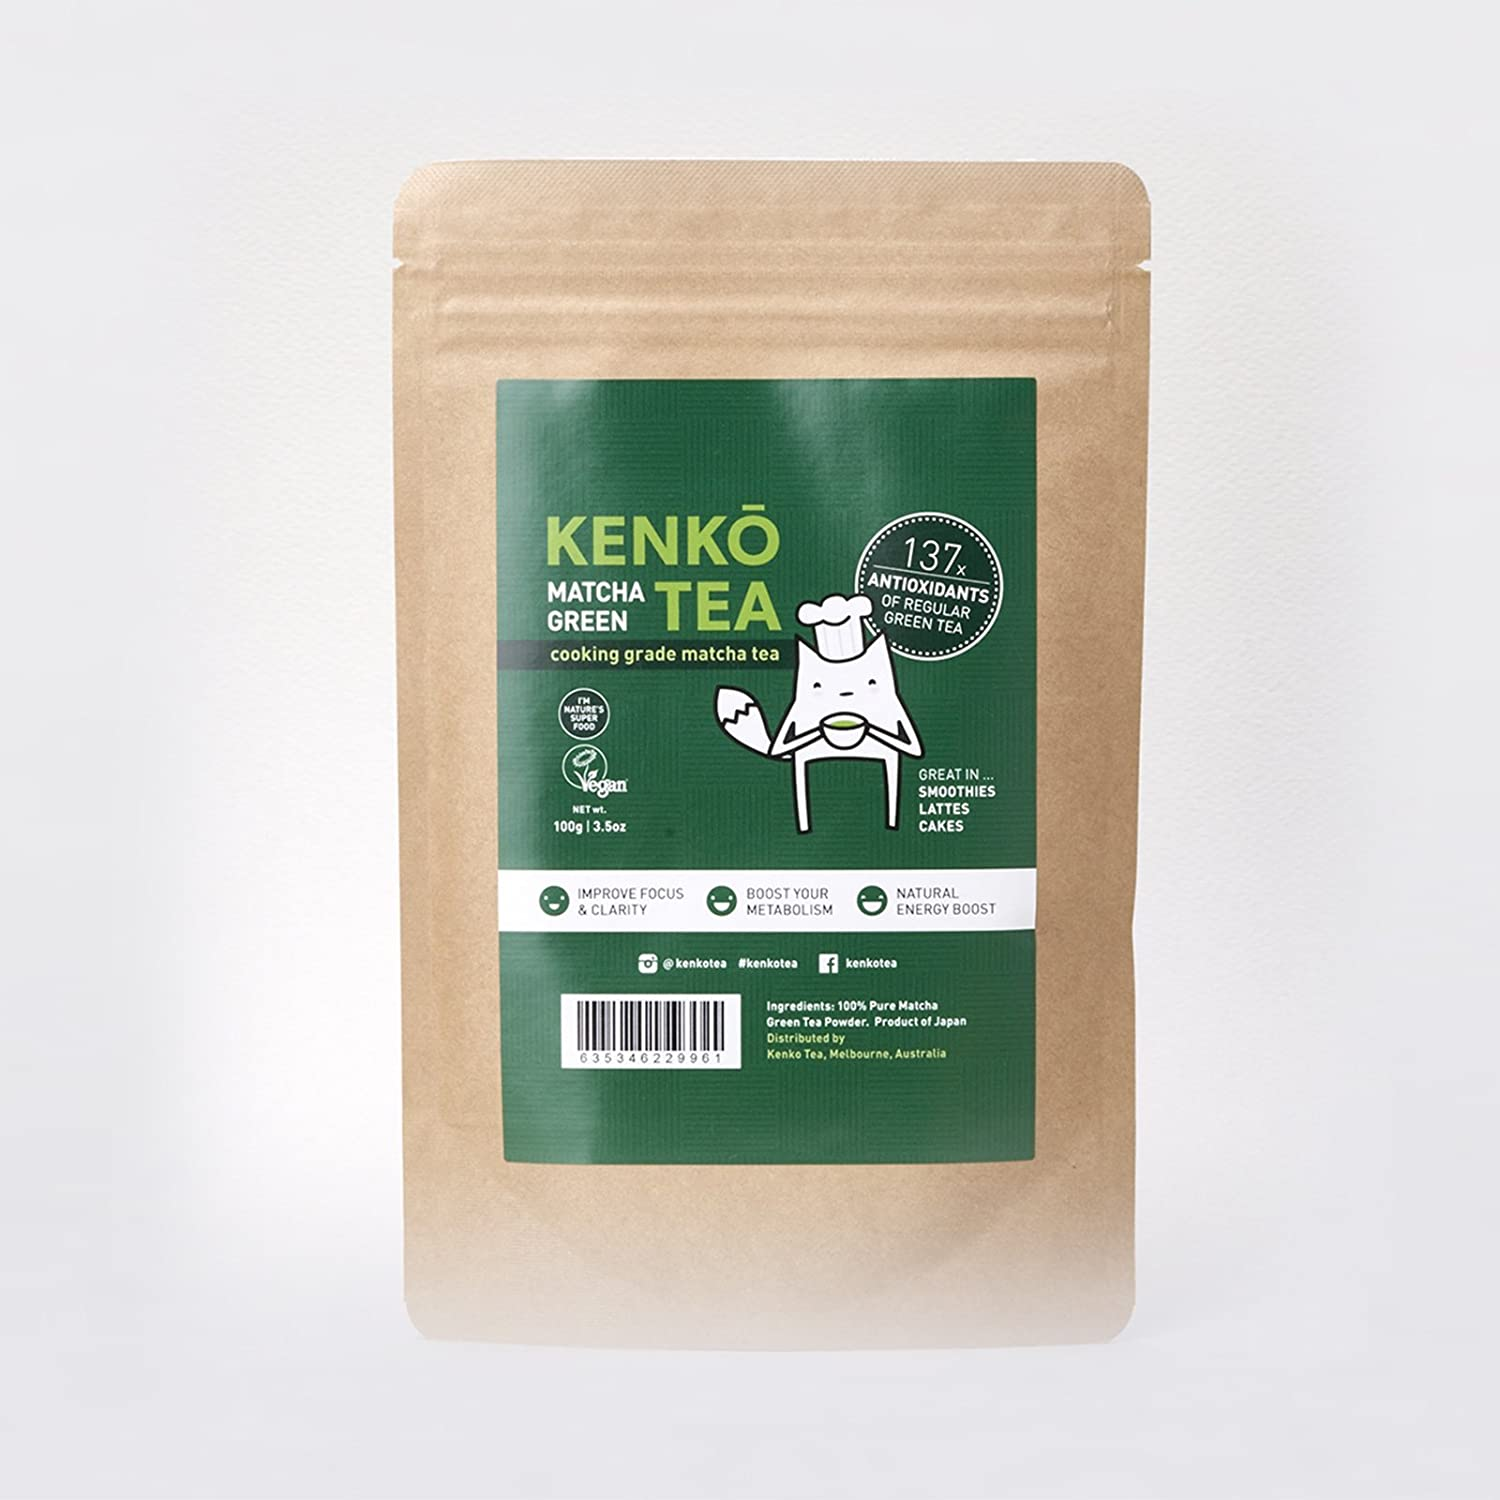 KENKO - Premium Matcha Green Tea Powder - 1st Harvest - Special Drinking Blend for Top Flavor - Best Tasting Ceremonial Grade Matcha Tea Powder - Japanese -30g [1oz] Kenko Tea SYNCHKG061285